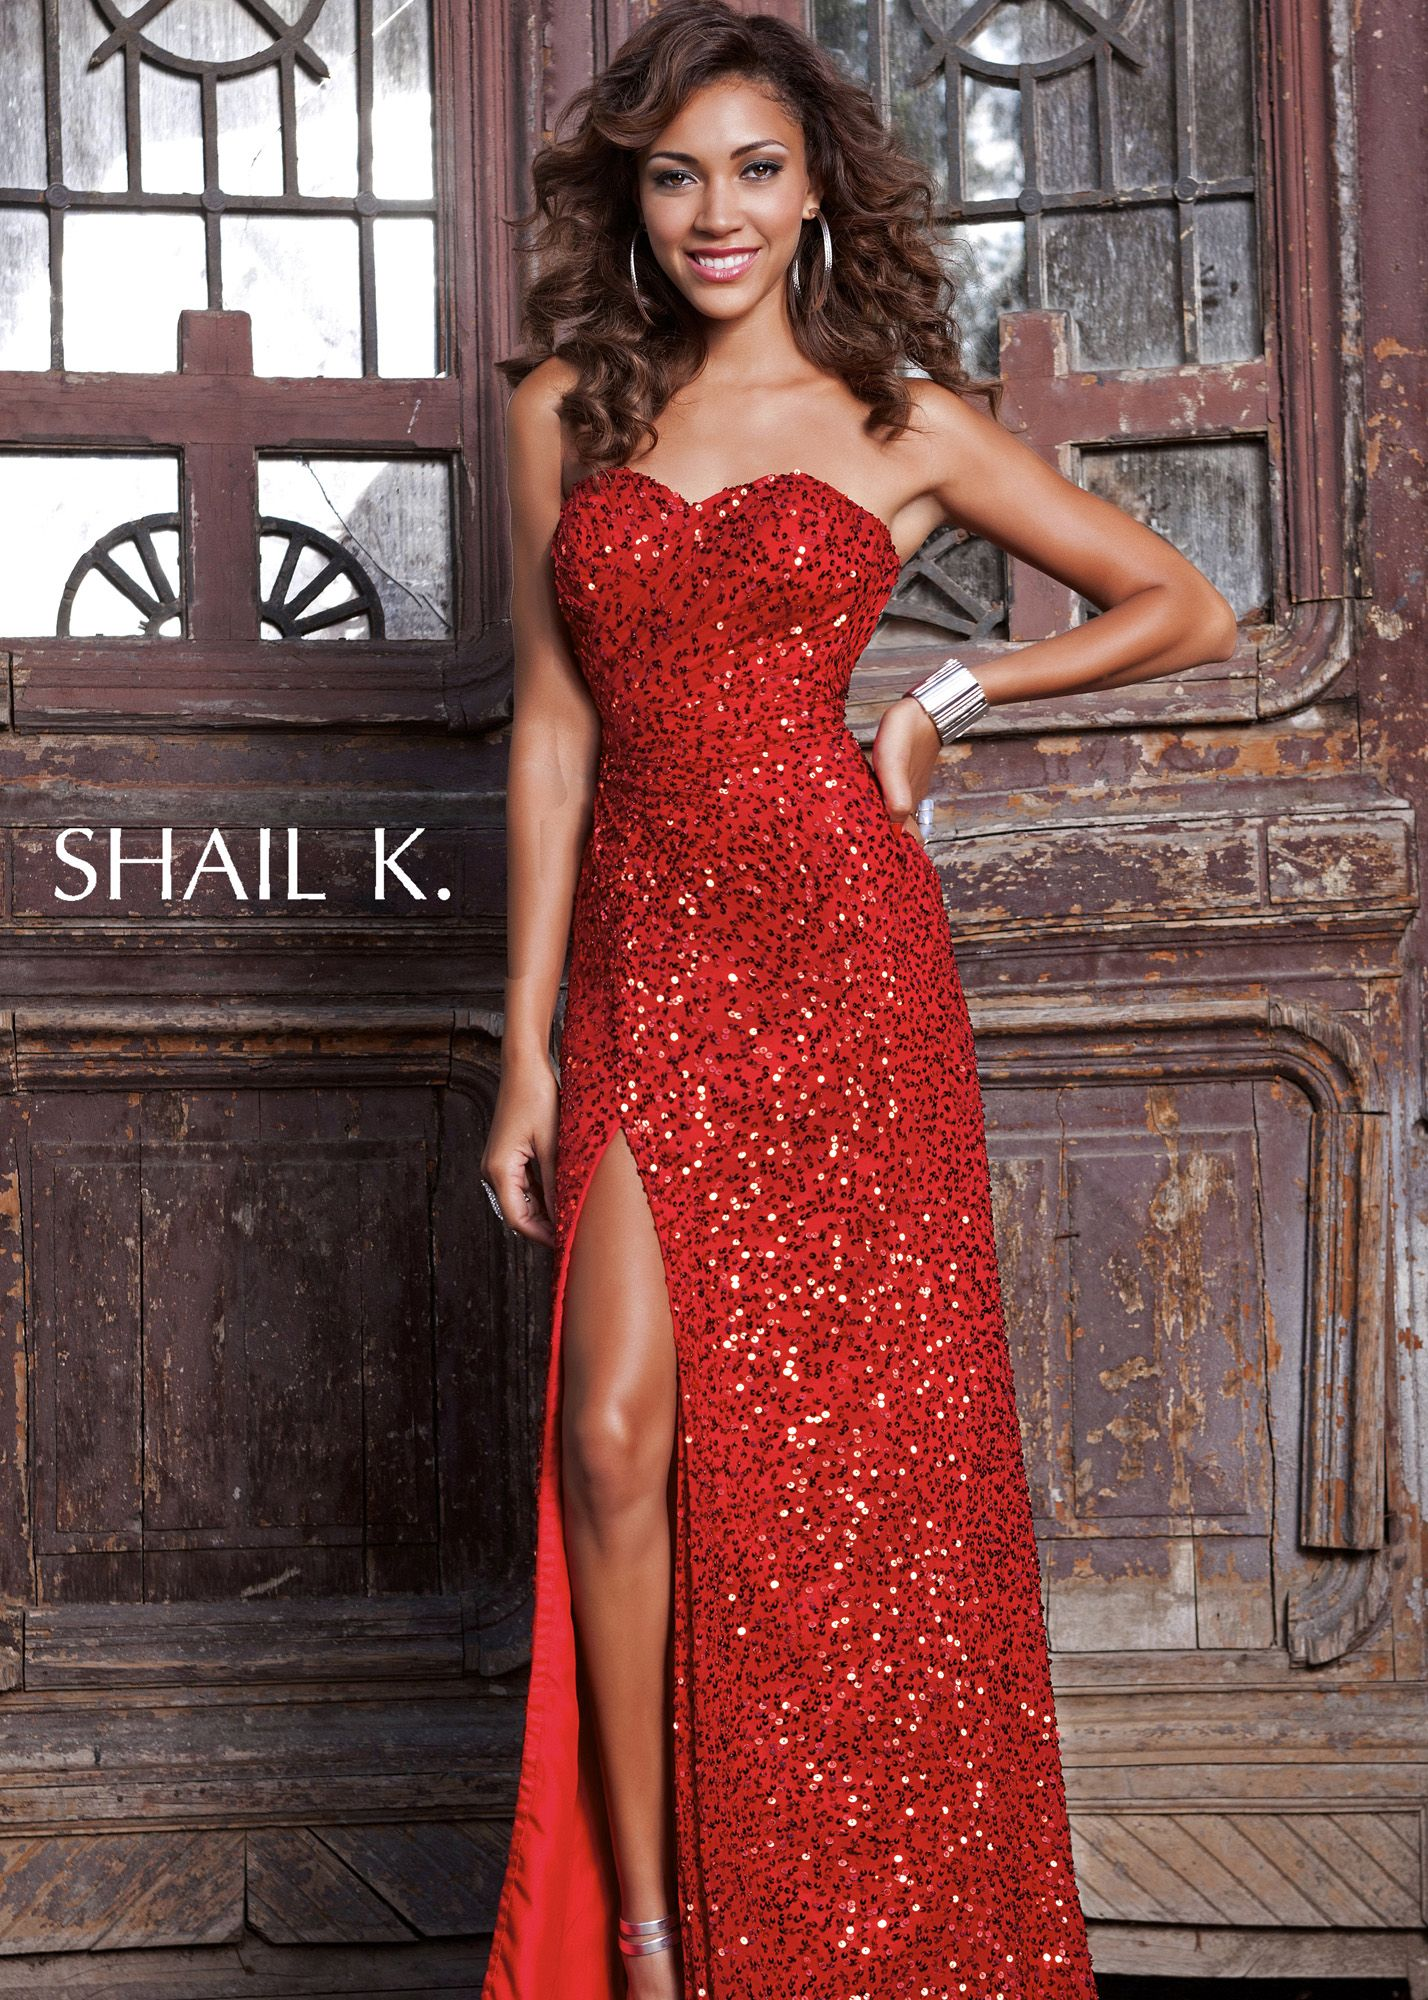 Shail k red sequin strapless prom dresses online southern